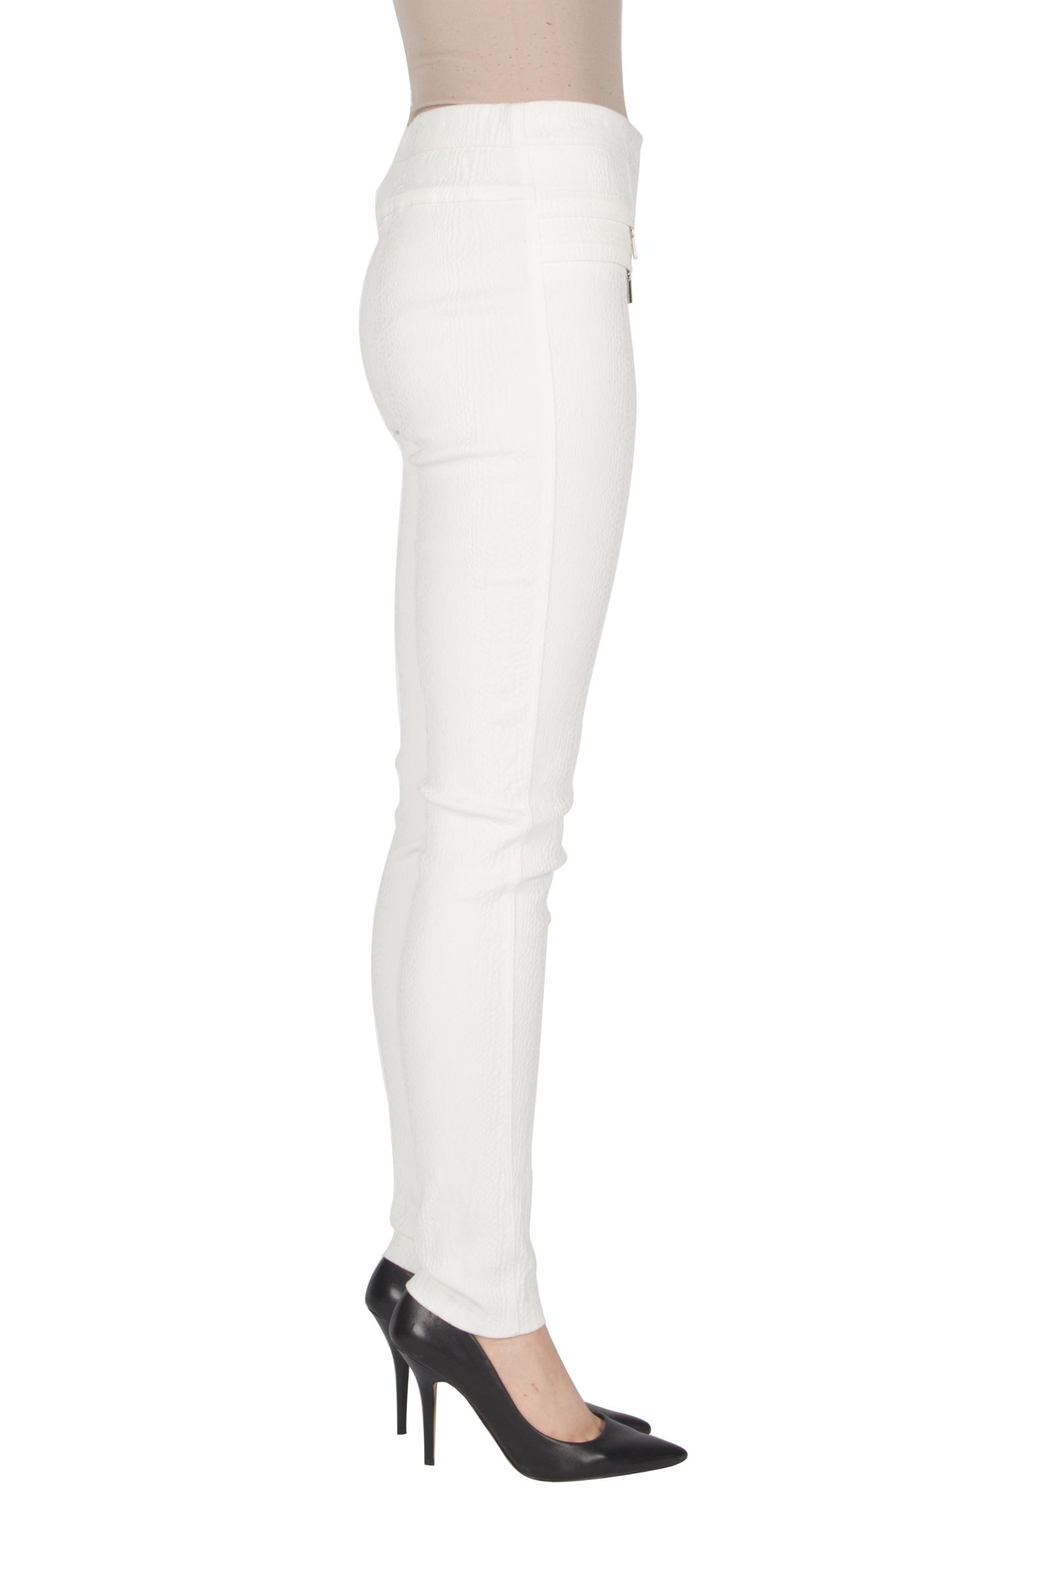 Joseph Ribkoff Winter White Pants - Front Full Image